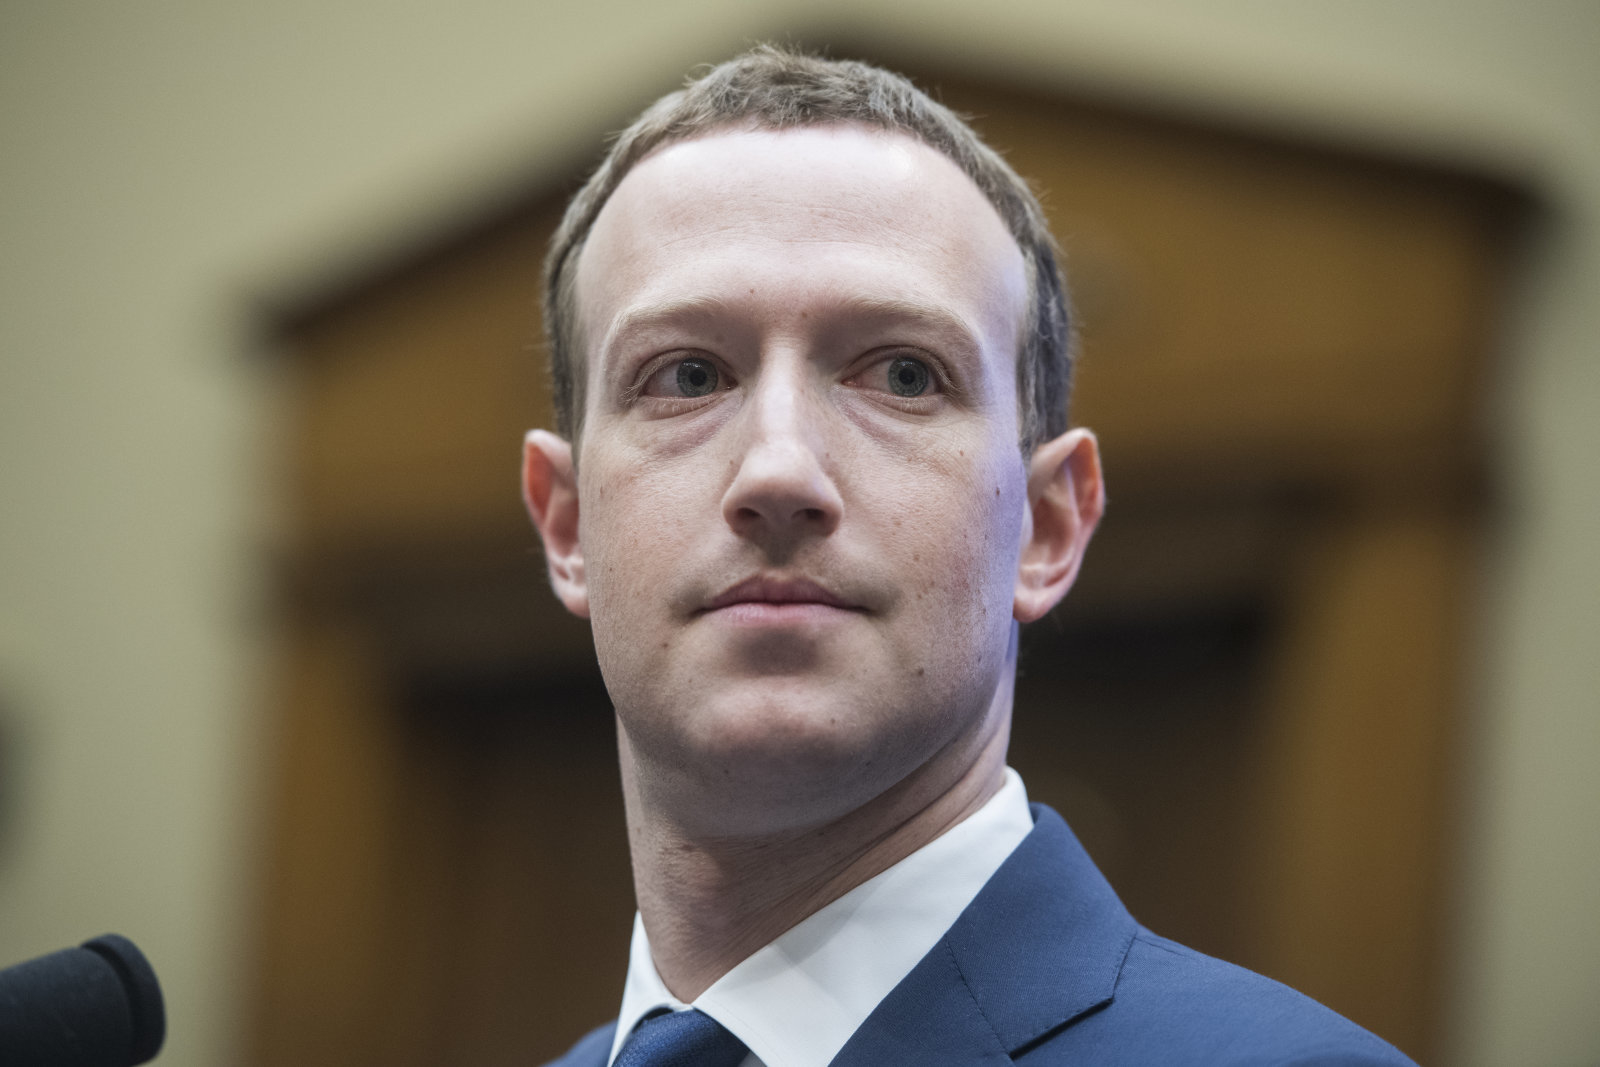 UNITED STATES - APRIL 11: Facebook CEO Mark Zuckerberg prepares to testify before a House Energy and Commerce Committee in Rayburn Building on the protection of user data on April 11, 2018. (Photo By Tom Williams/CQ Roll Call)